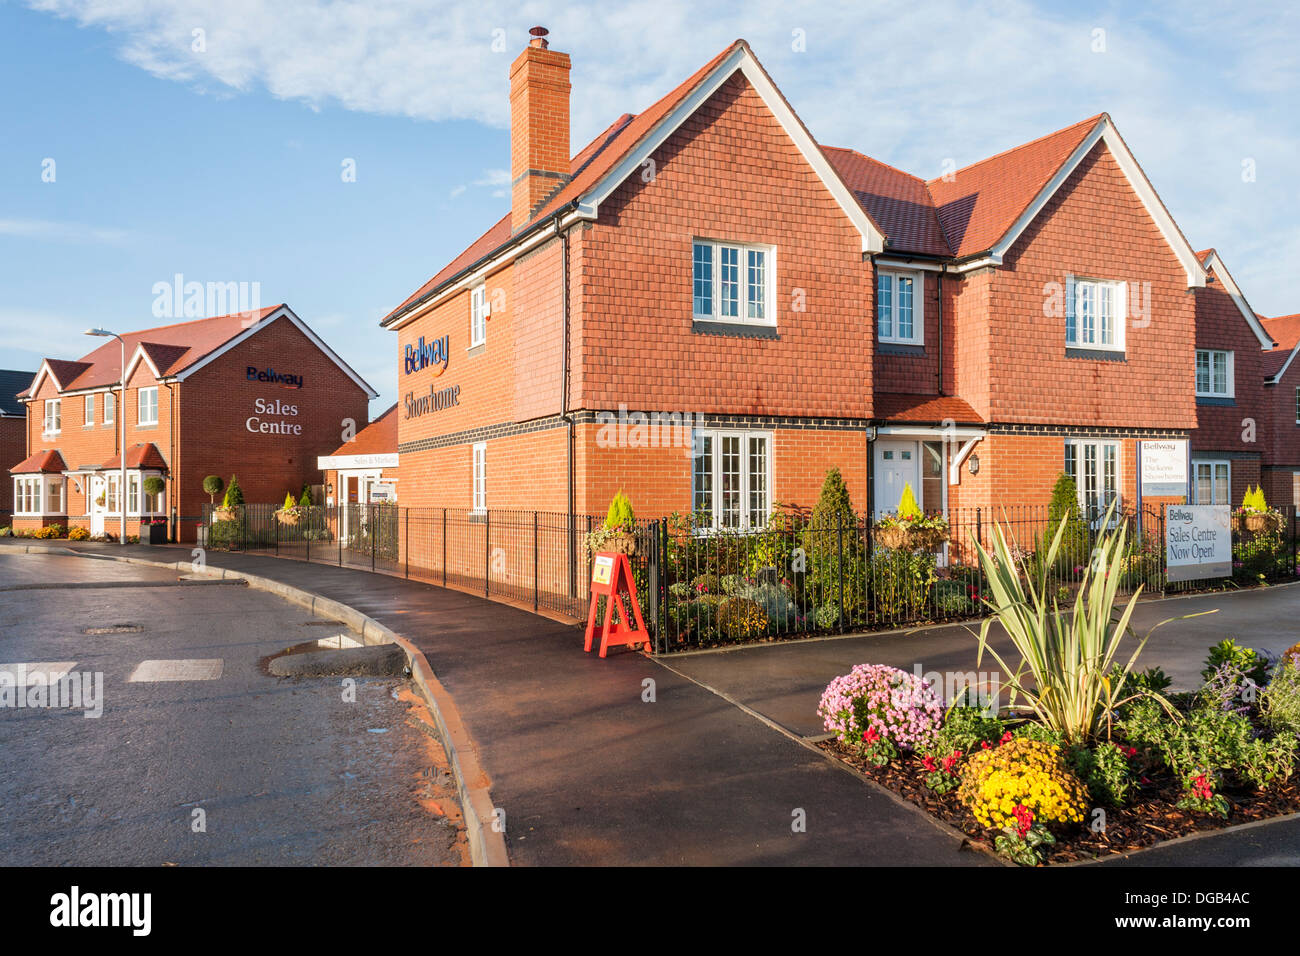 Bellway show home and sales centre at a new house build housing estate in 2013. Reading, Berkshire, South East England, GB, UK. - Stock Image